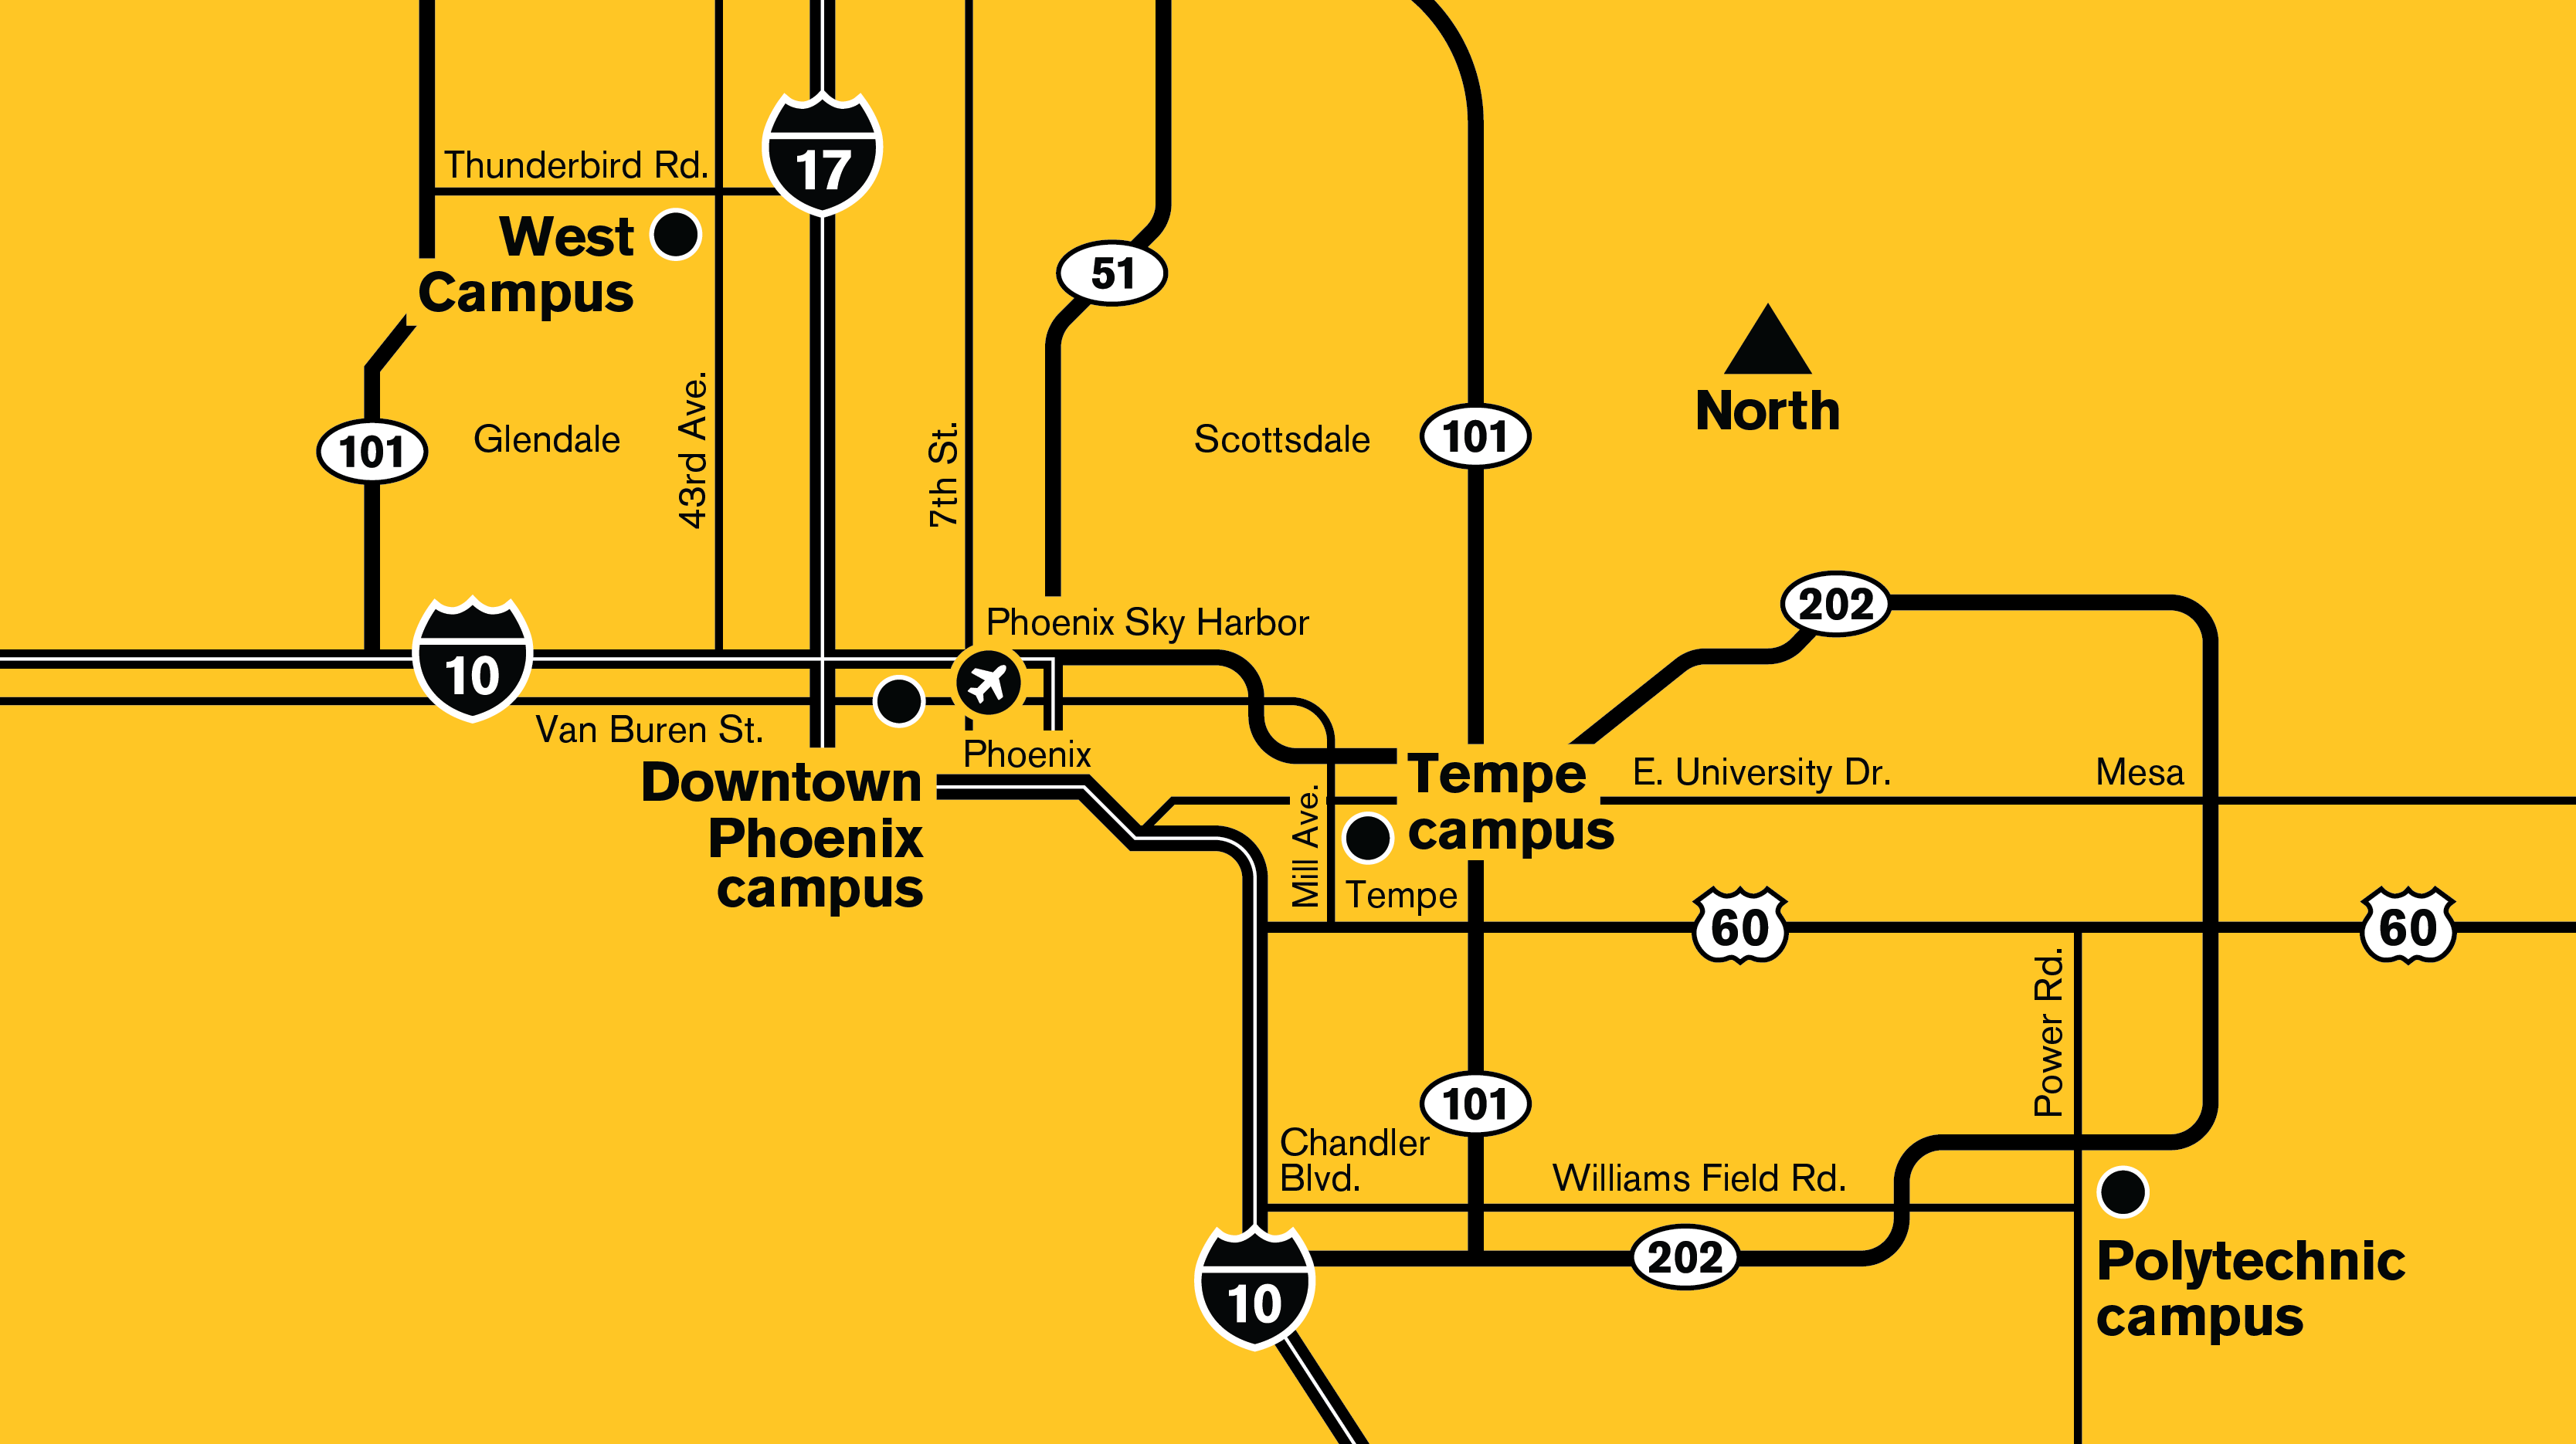 A map of ASU locations around the Valley